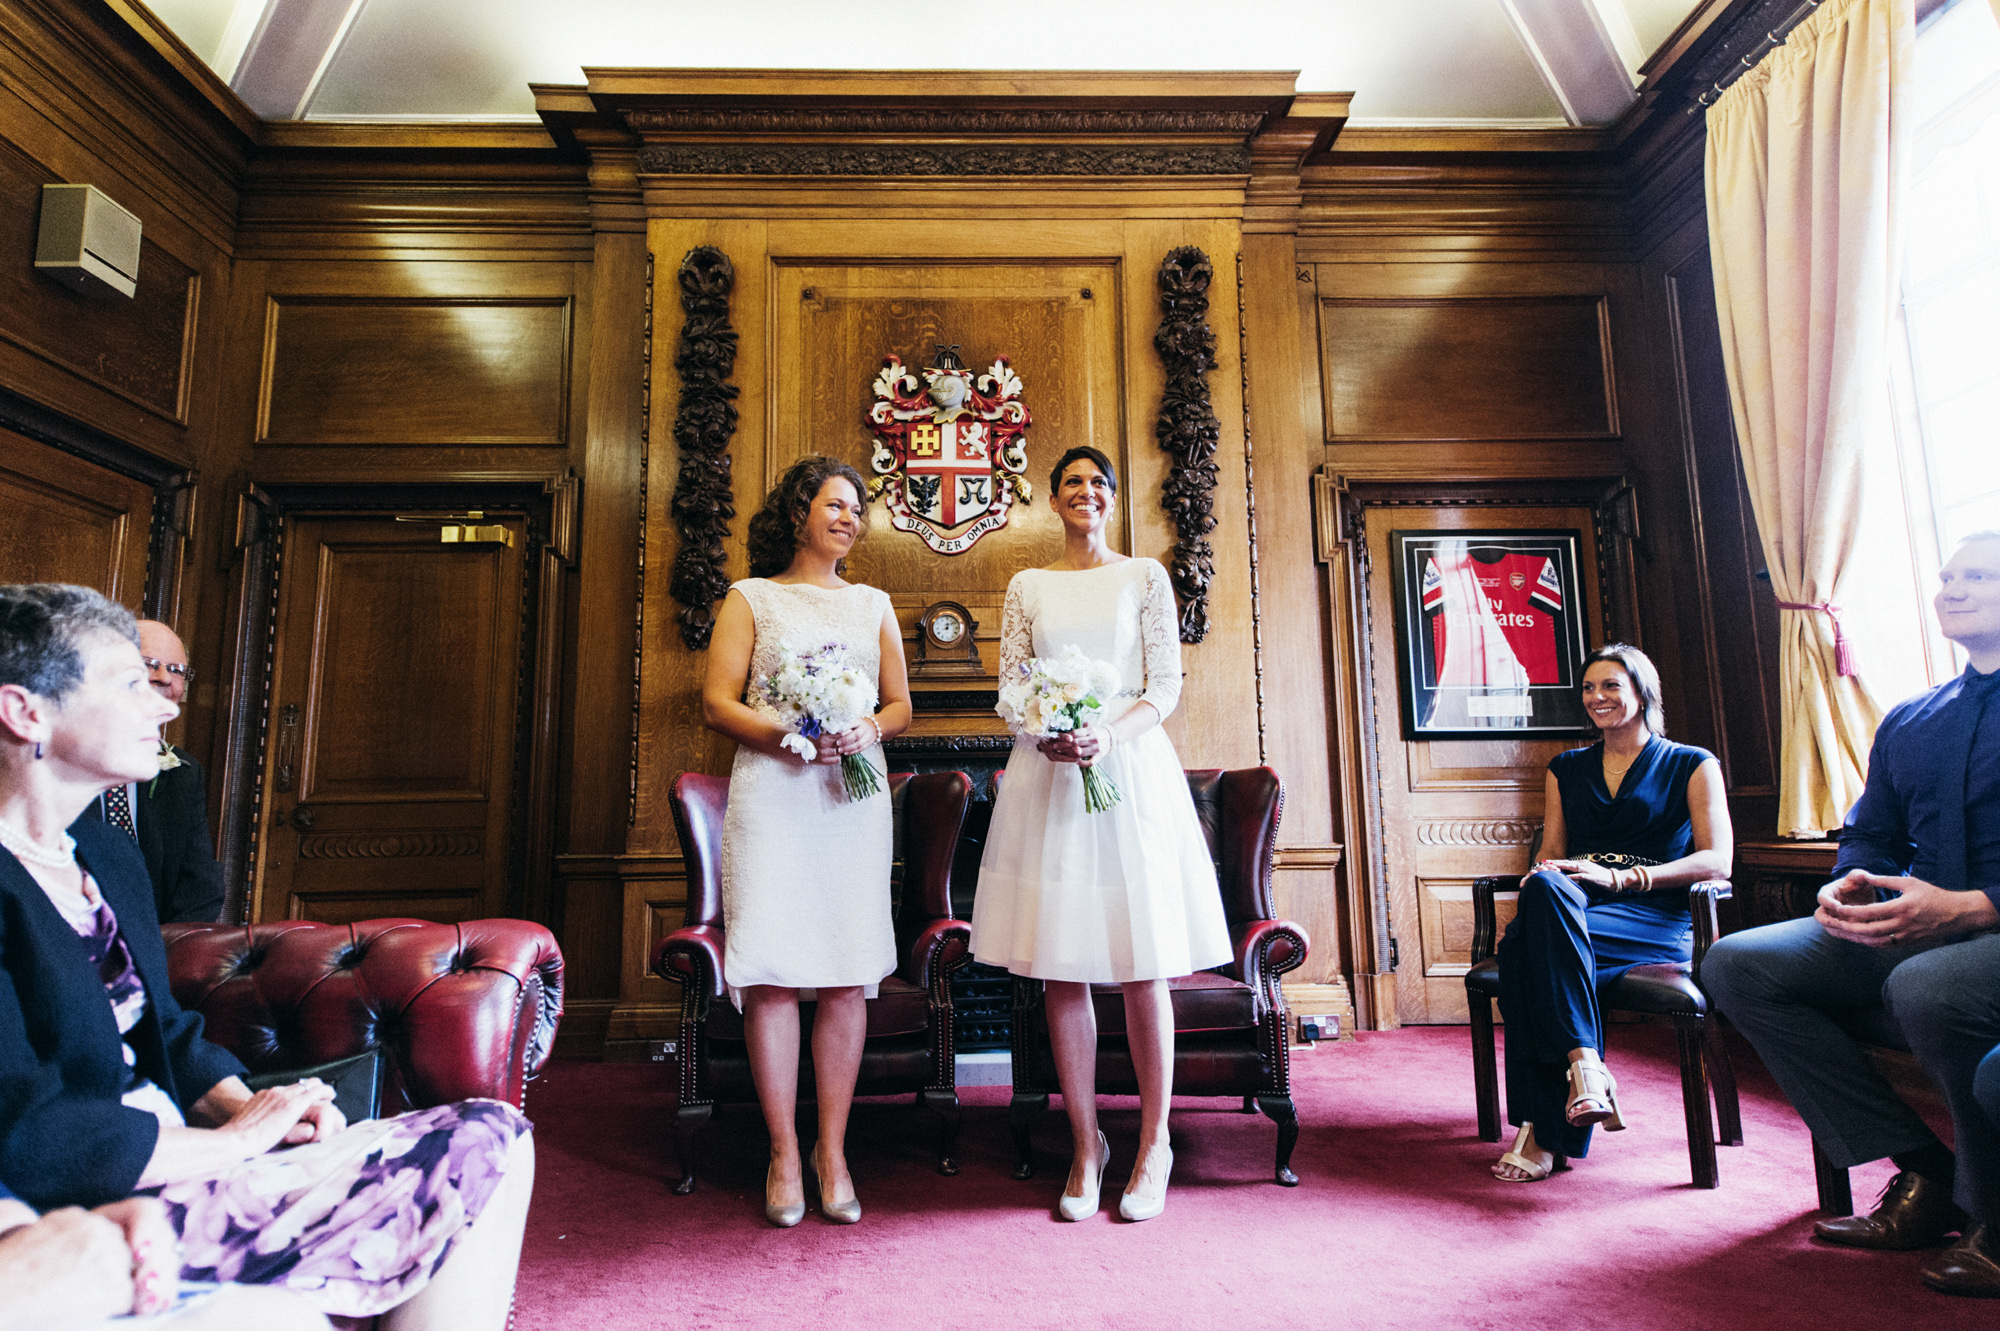 Two brides in short wedding dresses at The Mayors Parlour - gay wedding The Roost Dalston wedding - quirky London wedding photographer © Babb Photo